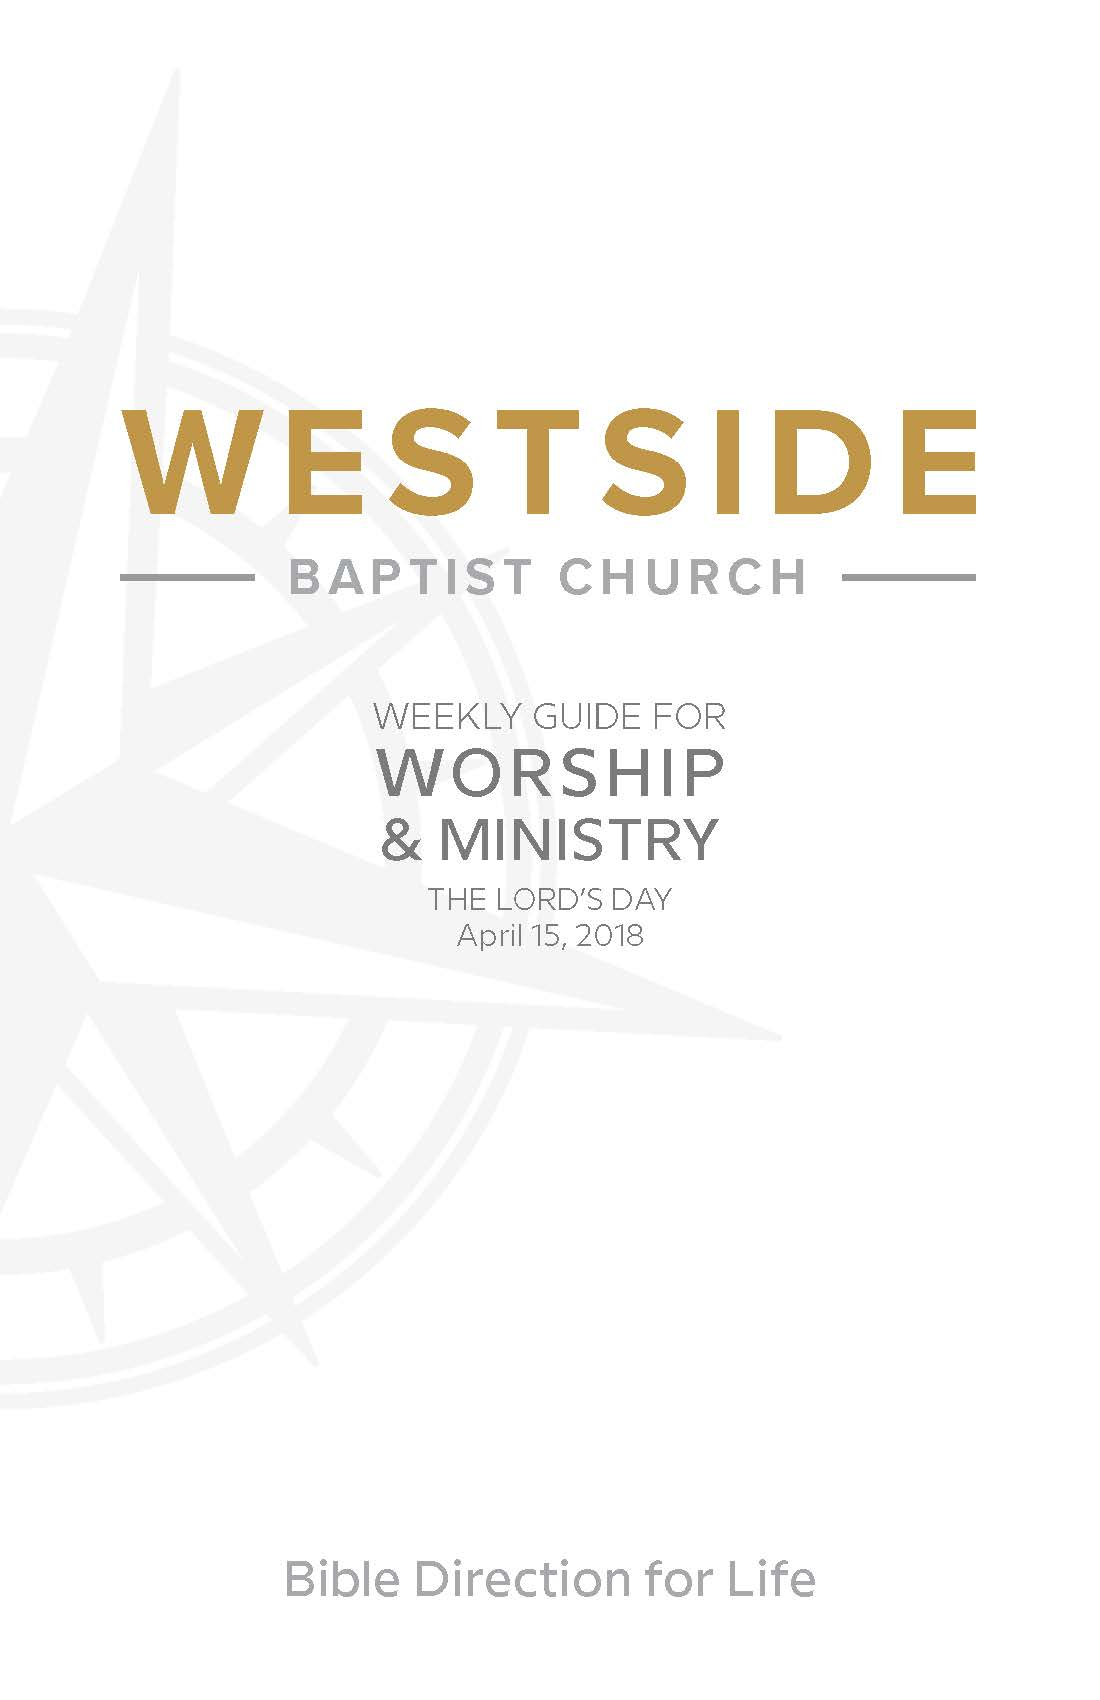 Weekly Guide for Worship and Ministry—April 15